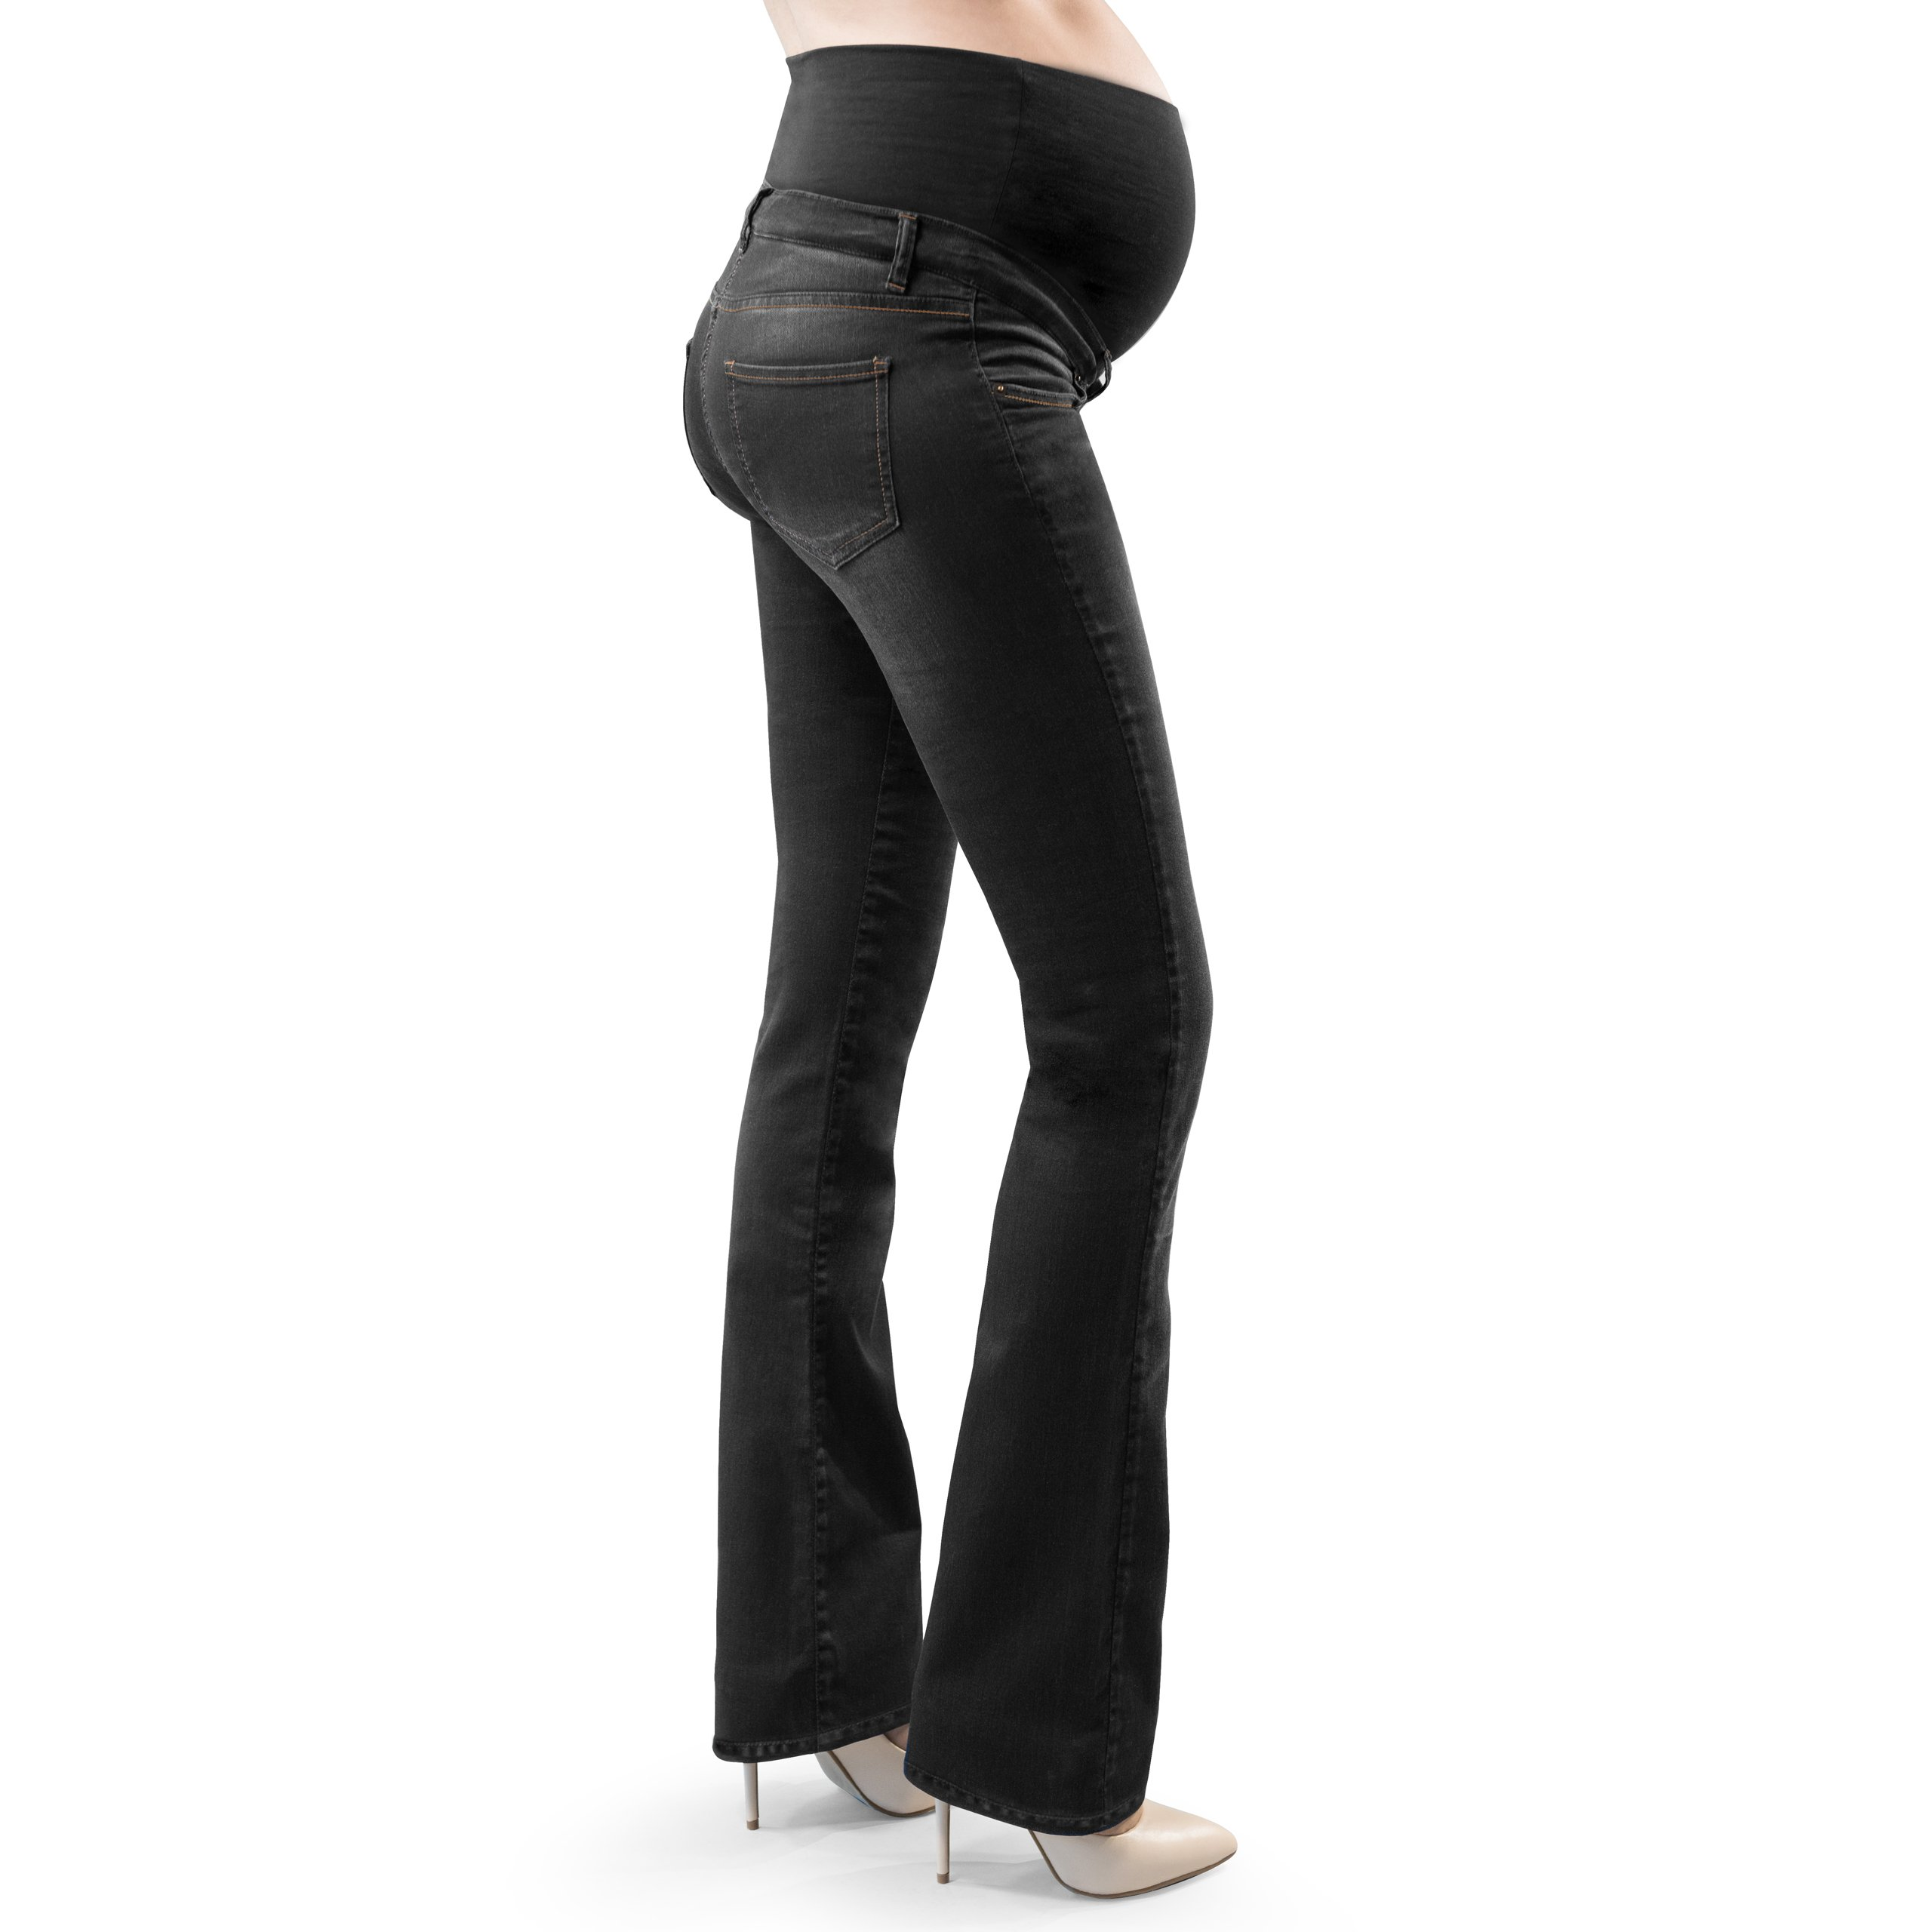 MamaJeans - Torino Black Denim Boot Cut Maternity Pants Made in Italy, Size - 30